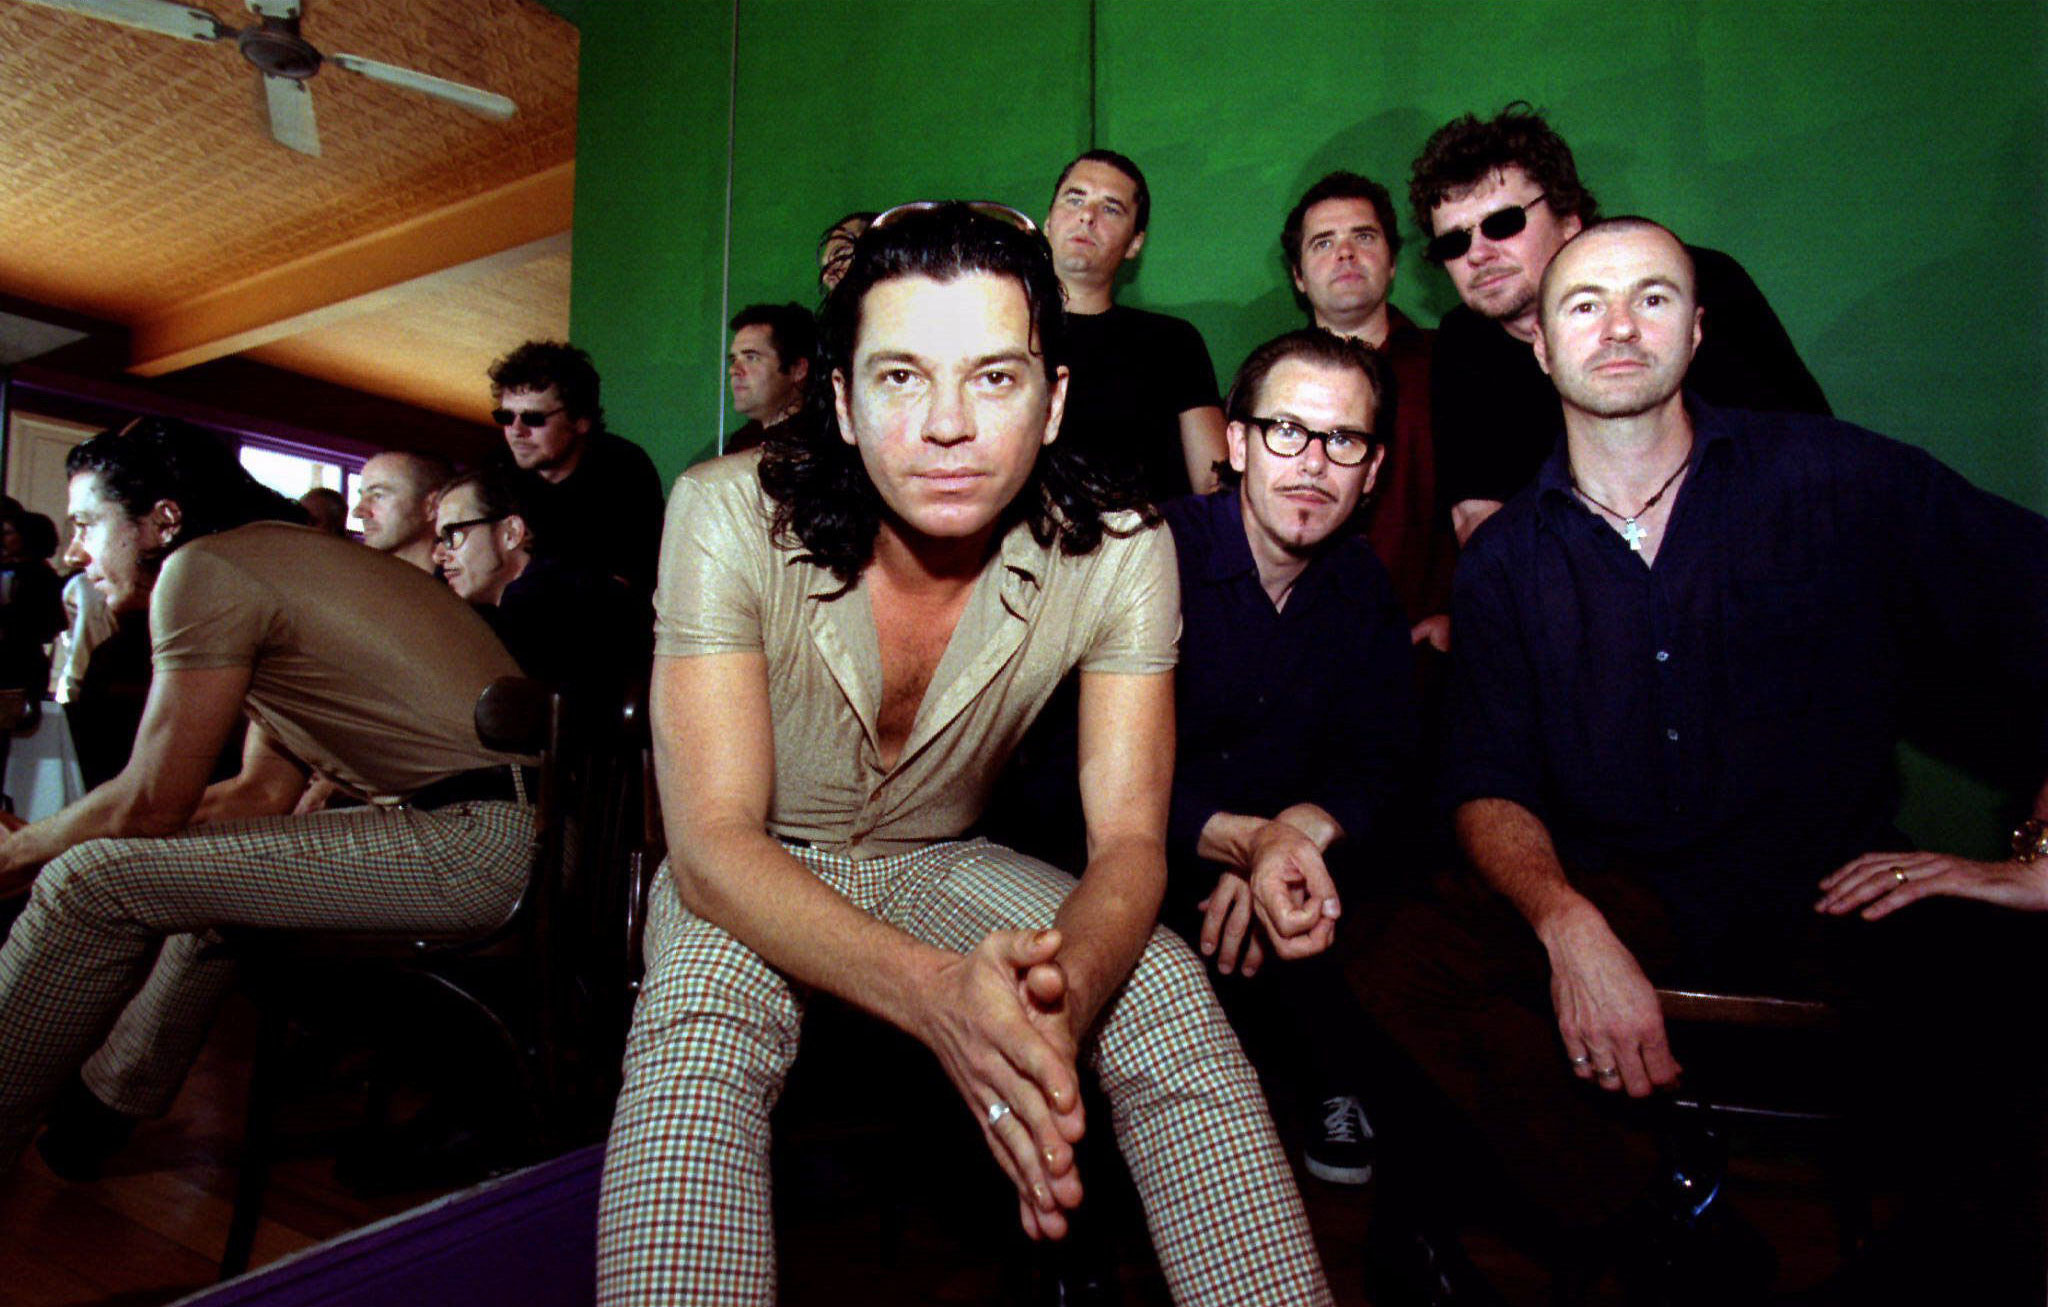 FILE PHOTO 25SEP96 - Australian band INXS, (L to R) lead singer Michael Hutchence, Jon Farriss, Kirk Pengilly, Andrew Farriss, Tim Farriss and Garry Beers pose for photographers in Sydney in this September 25, 1996 file photo. Australian pop star Michael Hutchence has hanged himself in a Sydney hotel, local media reported November 22. Police refused to confirm the reports, carried on a number of radio stations, but said they would hold a news conference today.  AUSTRALIA HUTCHENCE DEATH - RP1DRIDJJKAA